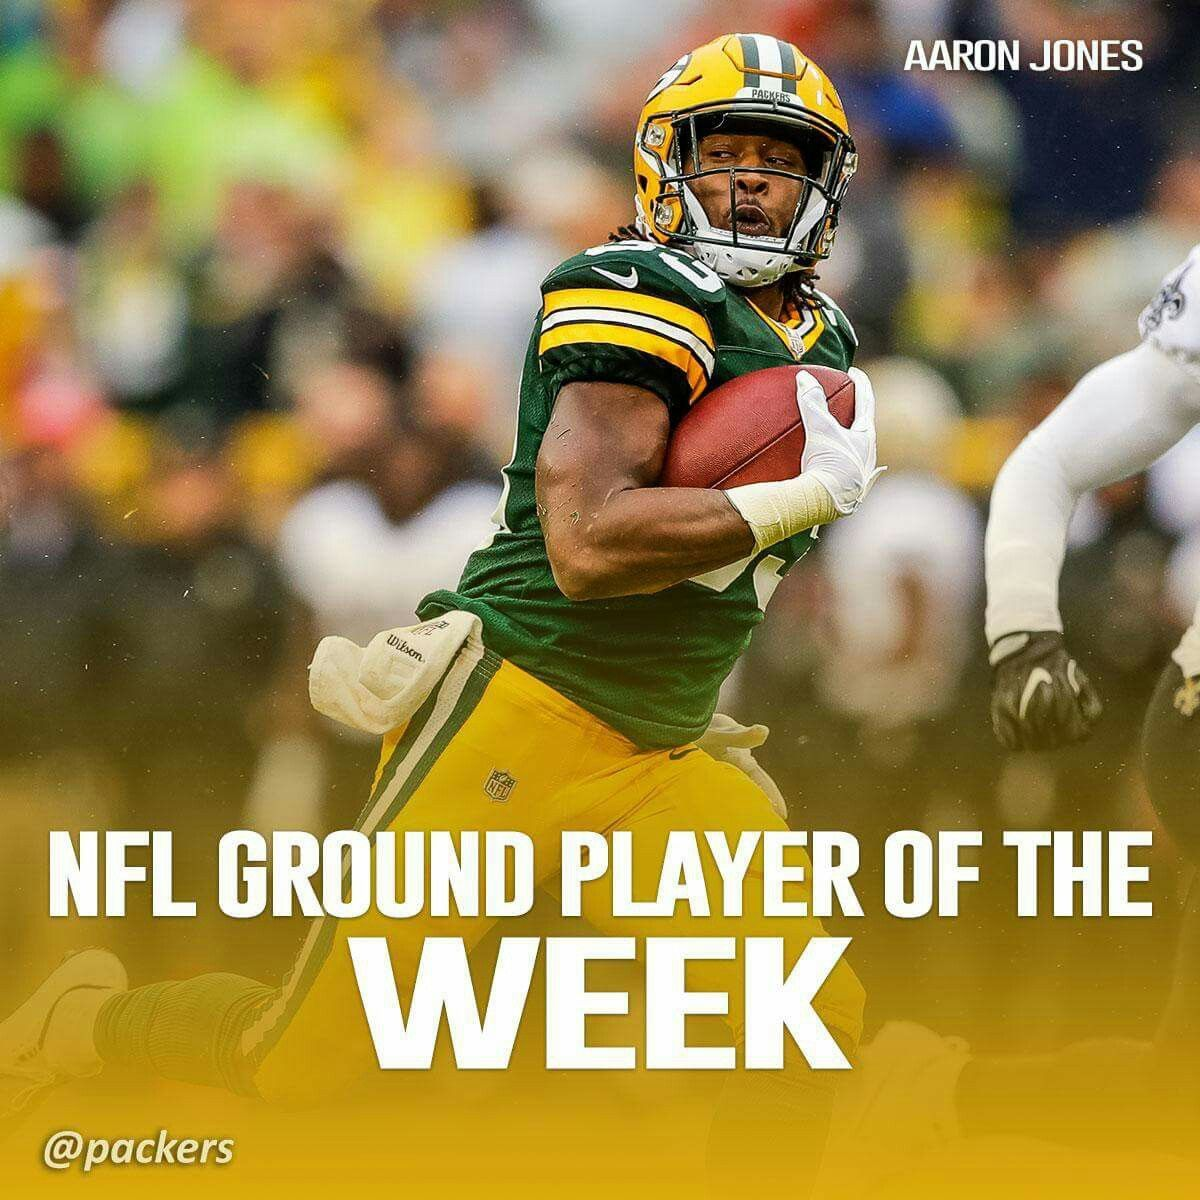 Congratulations Aaron Jones Green Bay Packers Green Bay Packers